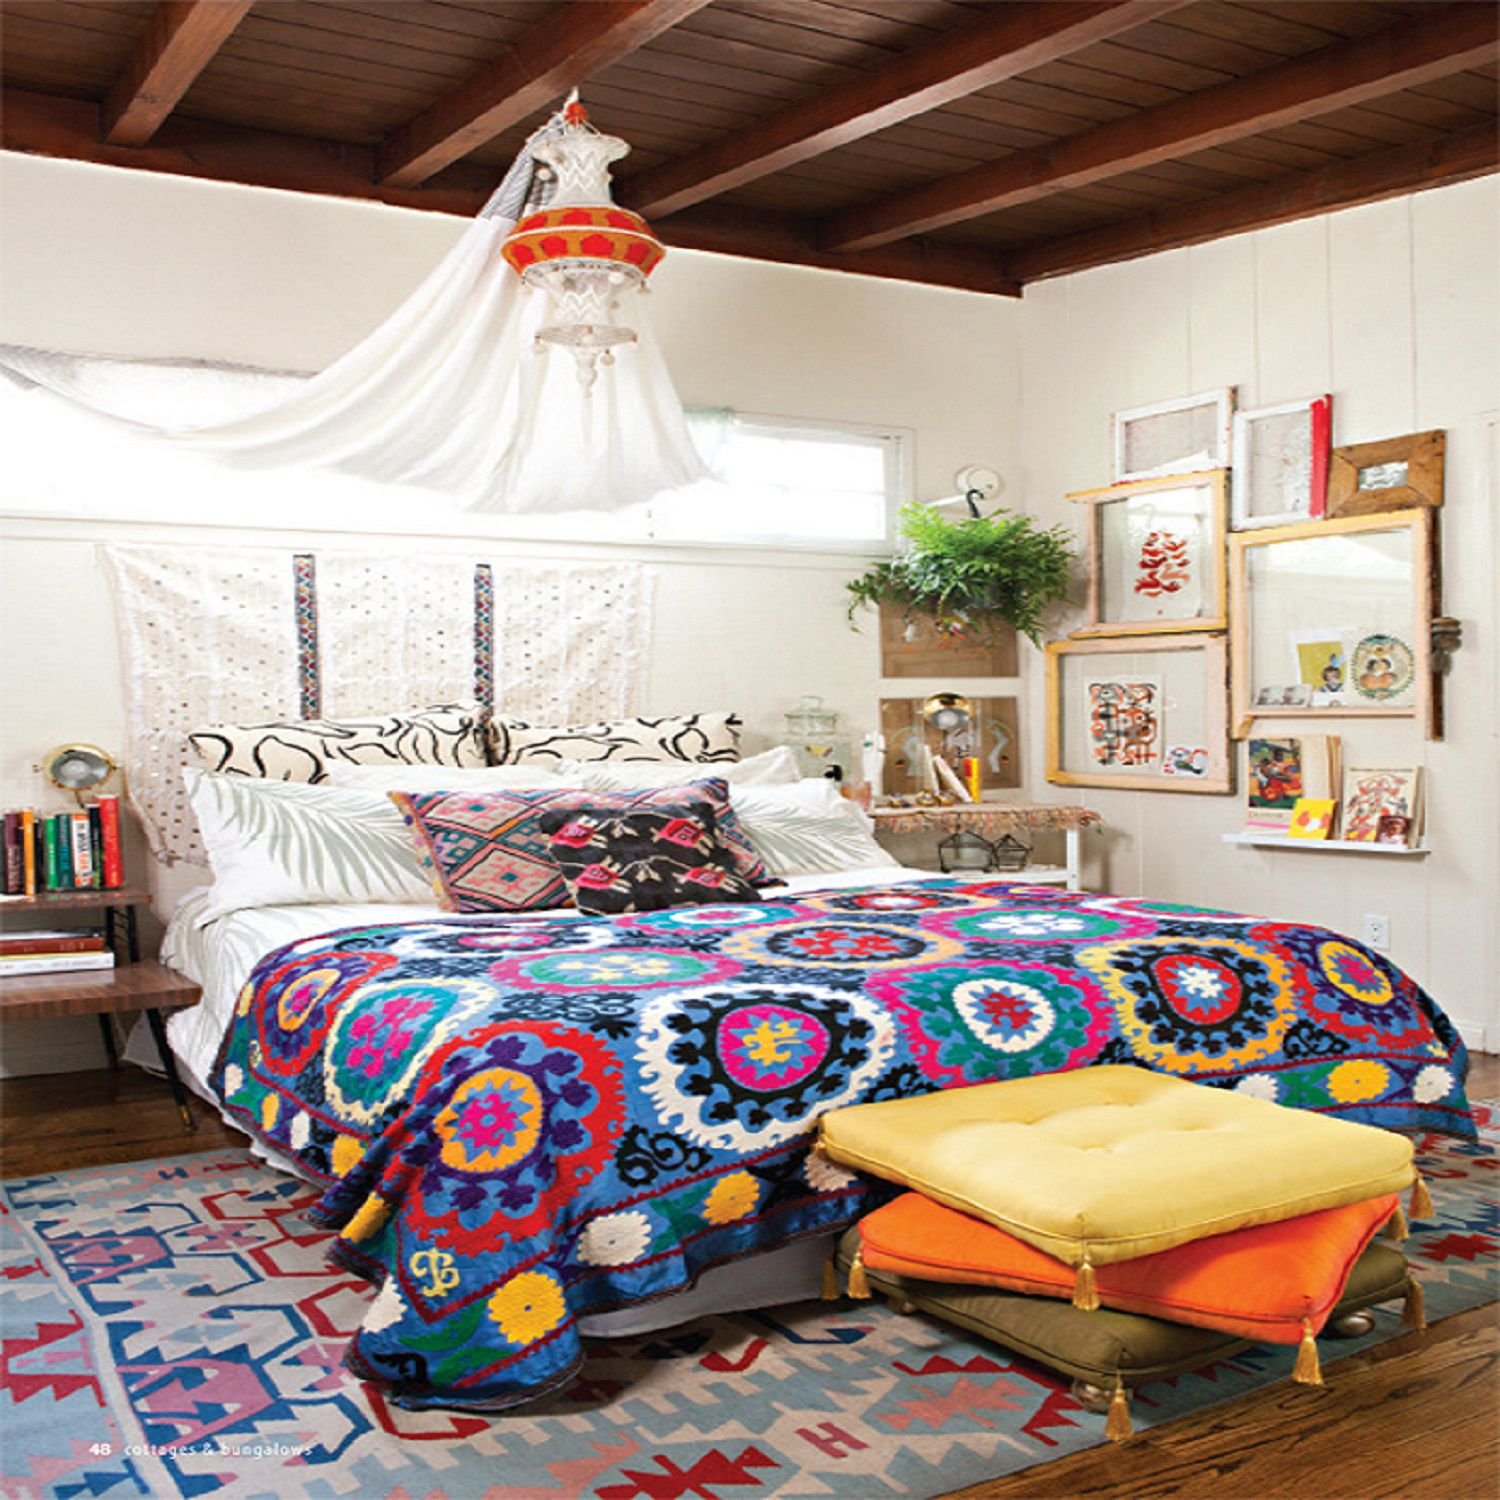 55 Best Home Decor Ideas: Beautiful Boho Bedroom Decorating Ideas And Photos